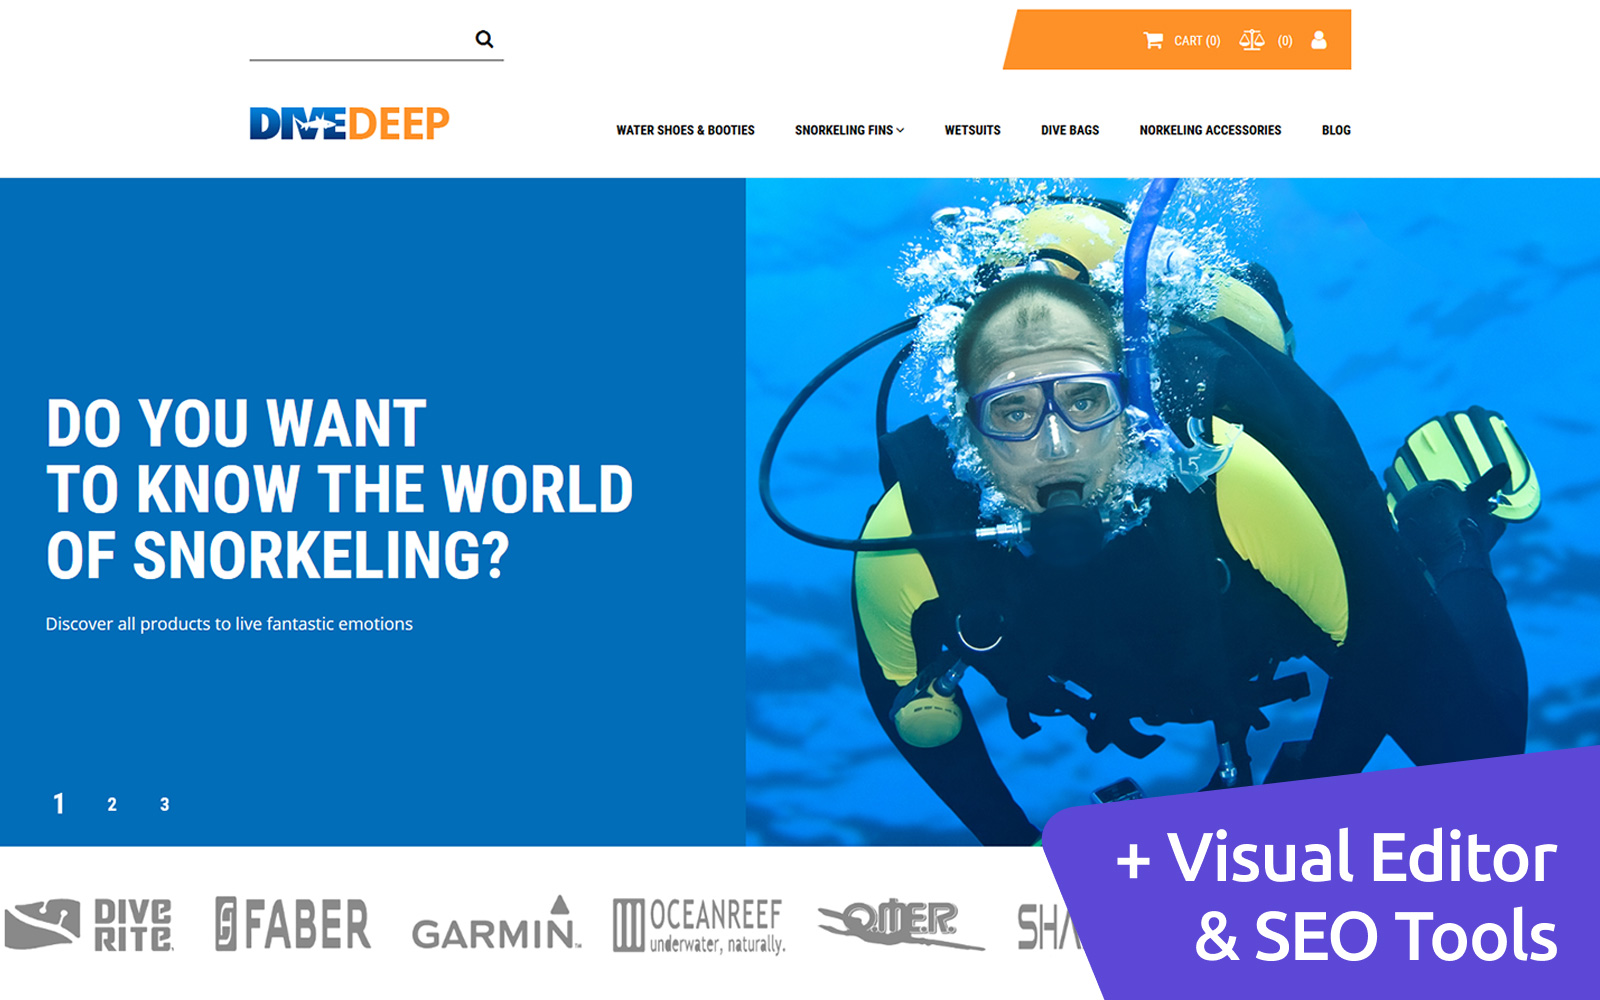 DiveDeep - Snorkeling Gear Store MotoCMS Ecommerce Template